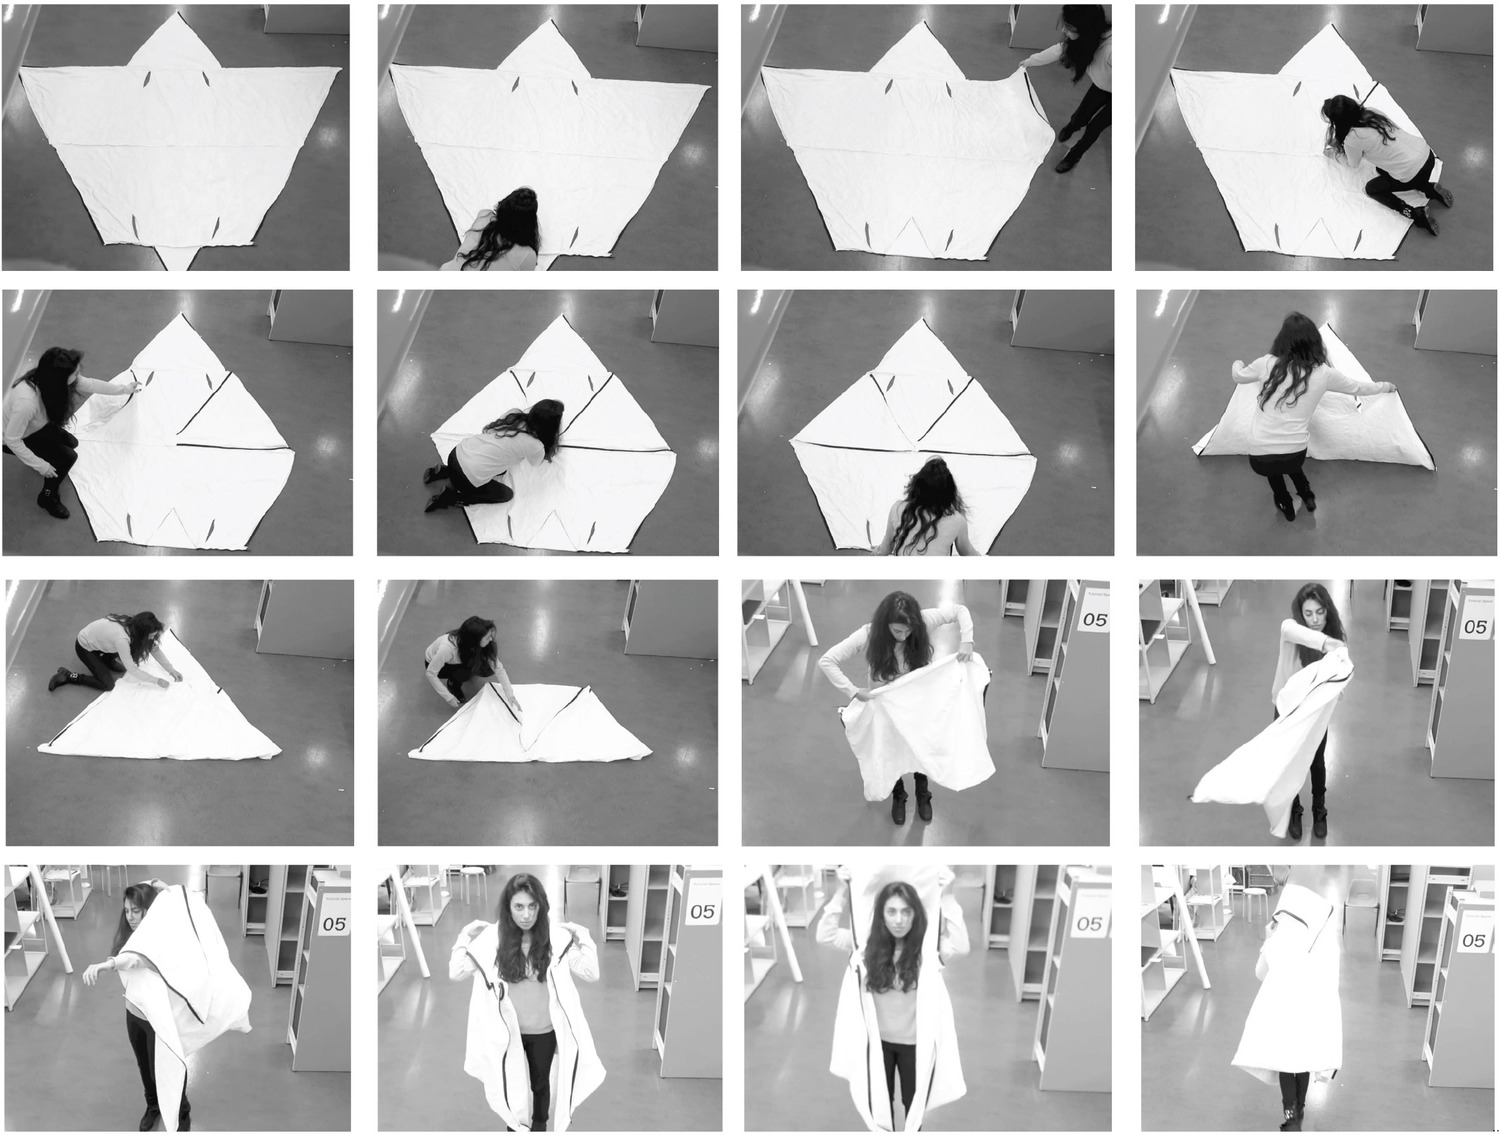 Wearable Tyvek Collage  sc 1 st  Material Concepts Blog & Wearable Shelter Made With Tyvek | Tyvek Innovative Uses ...